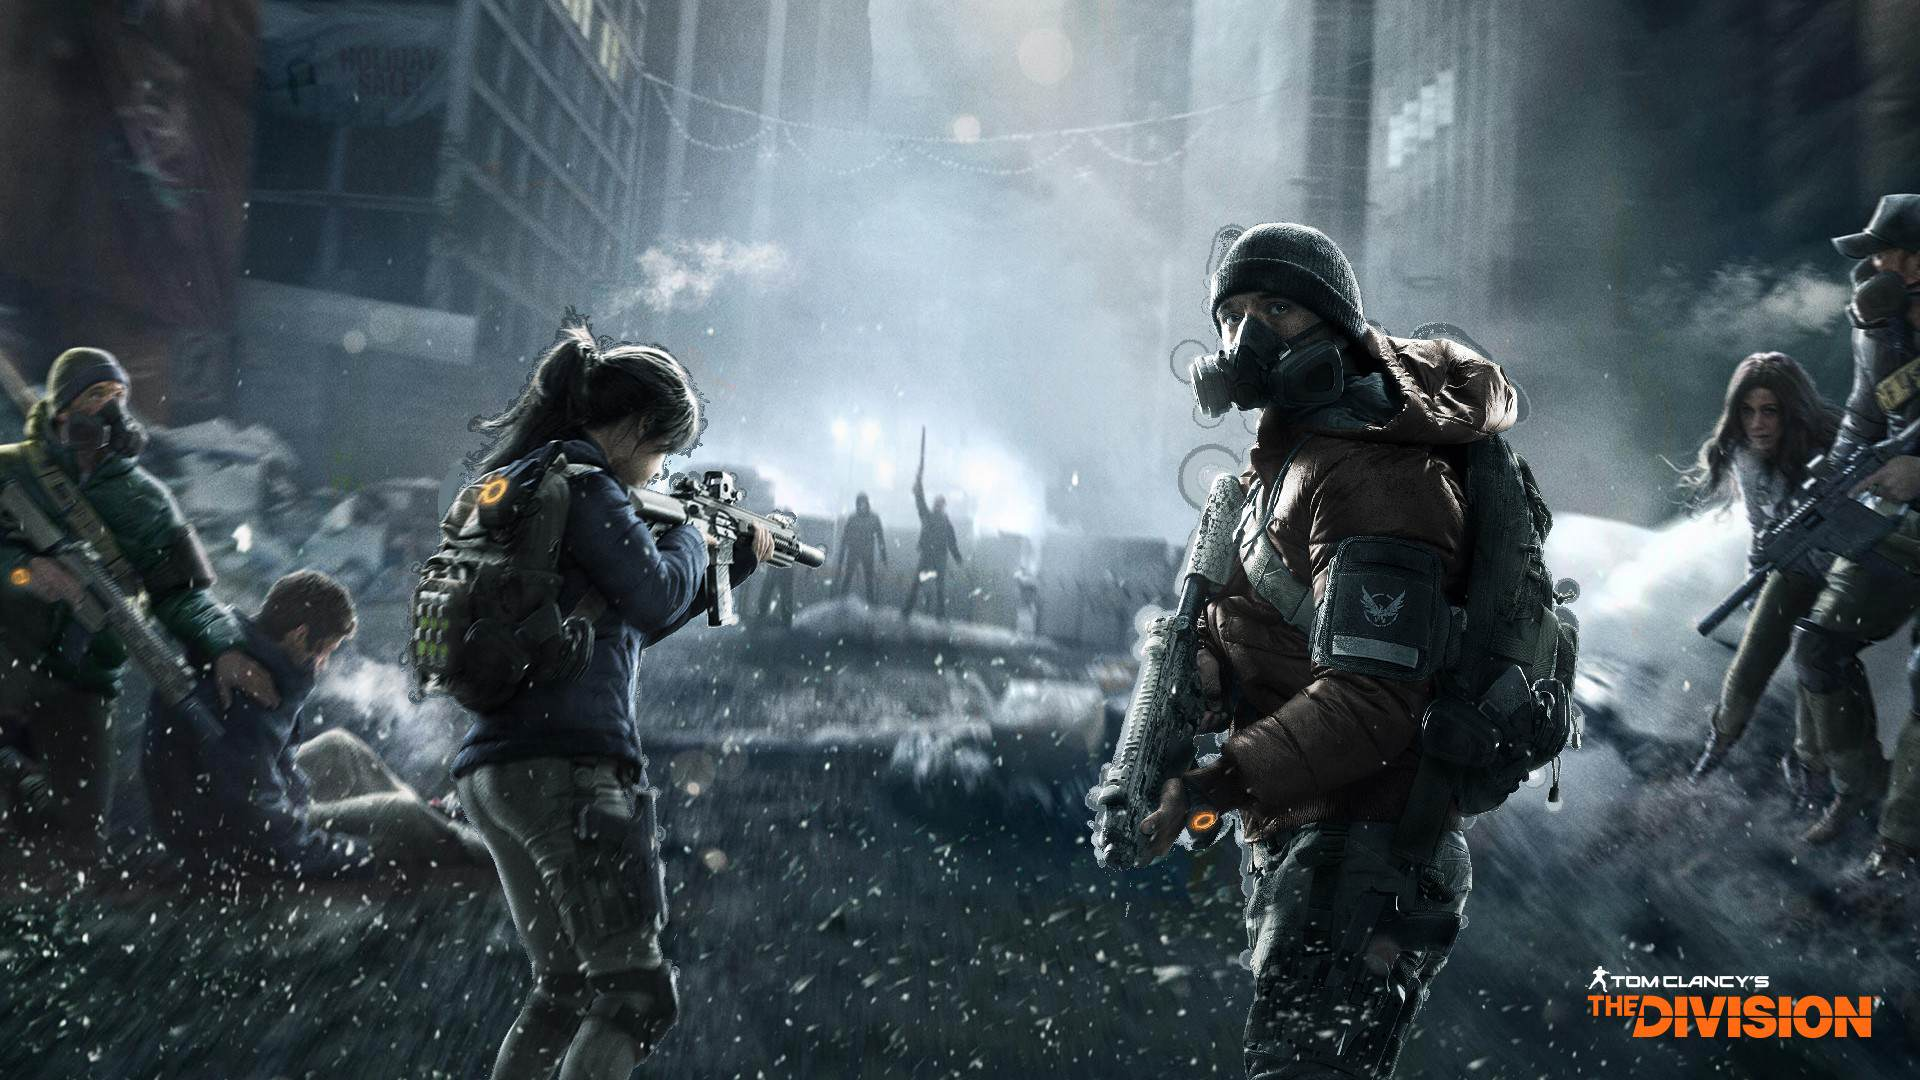 the division The Division Breaks Beta Record With Over Six Million Players